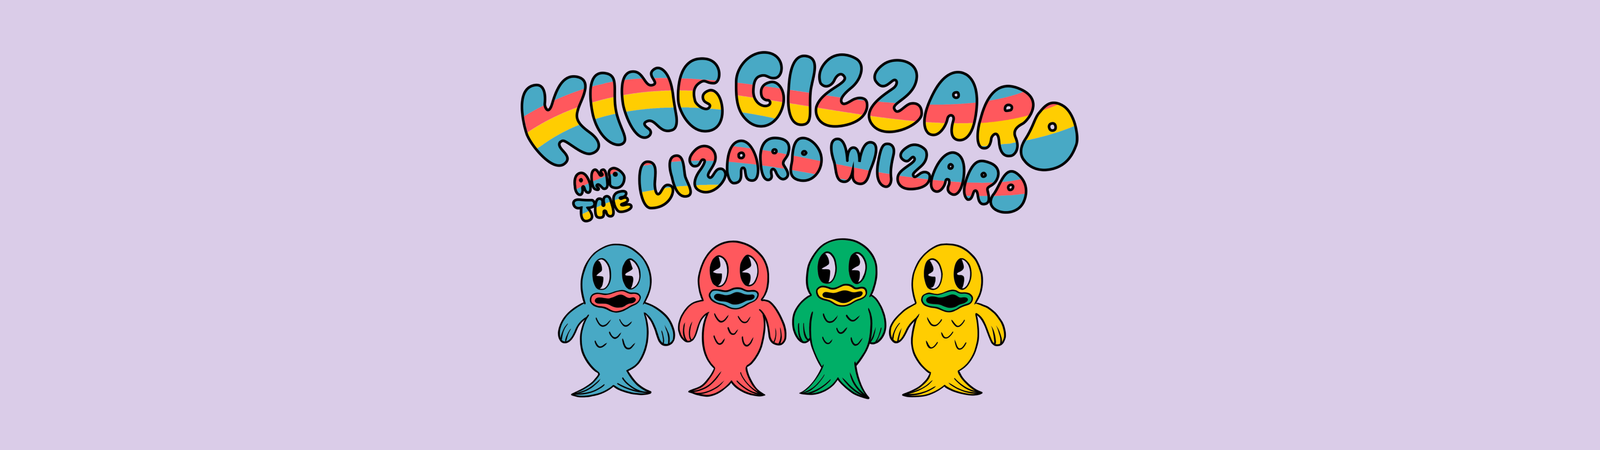 King Gizzard and The Lizard Wizard / Vinyl